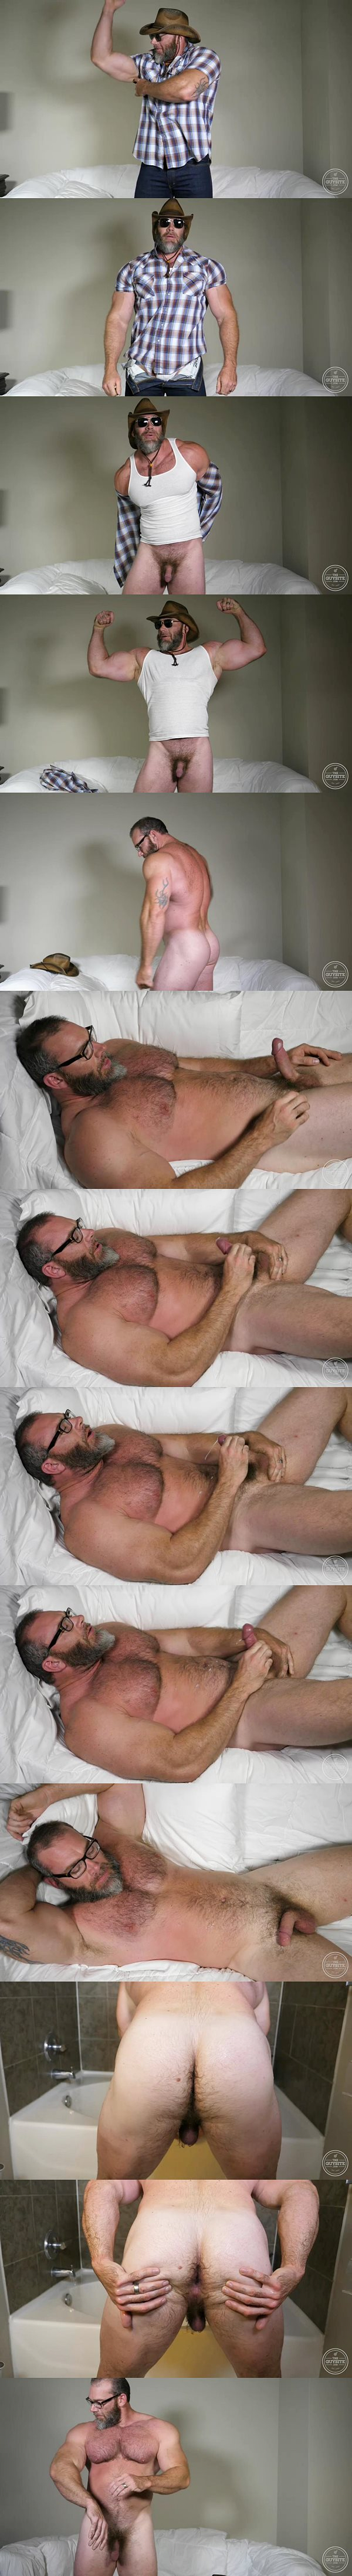 Fuzzy daddy bear Slick Rick wanks off in Muscle and Full Body Hair at Theguysite